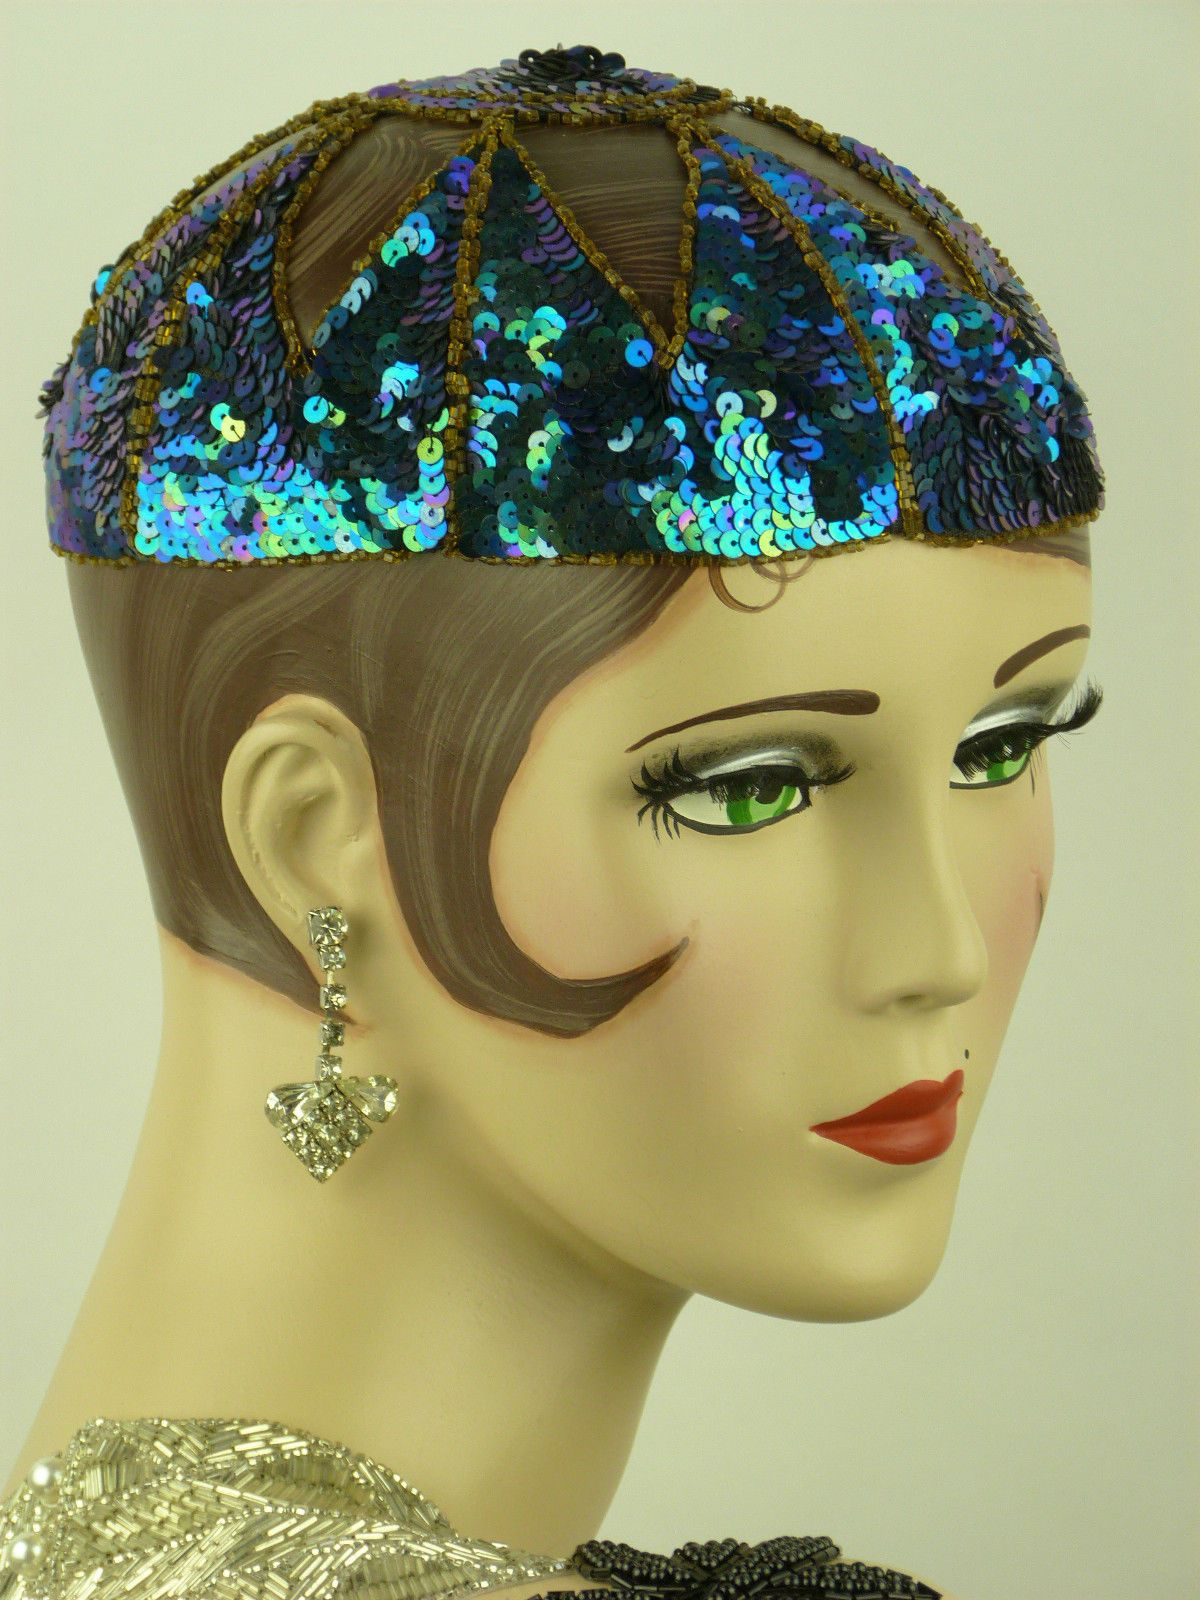 Hat Original French 1920s Flappers Sequin Juliette Cap Vivid Blue Bead.